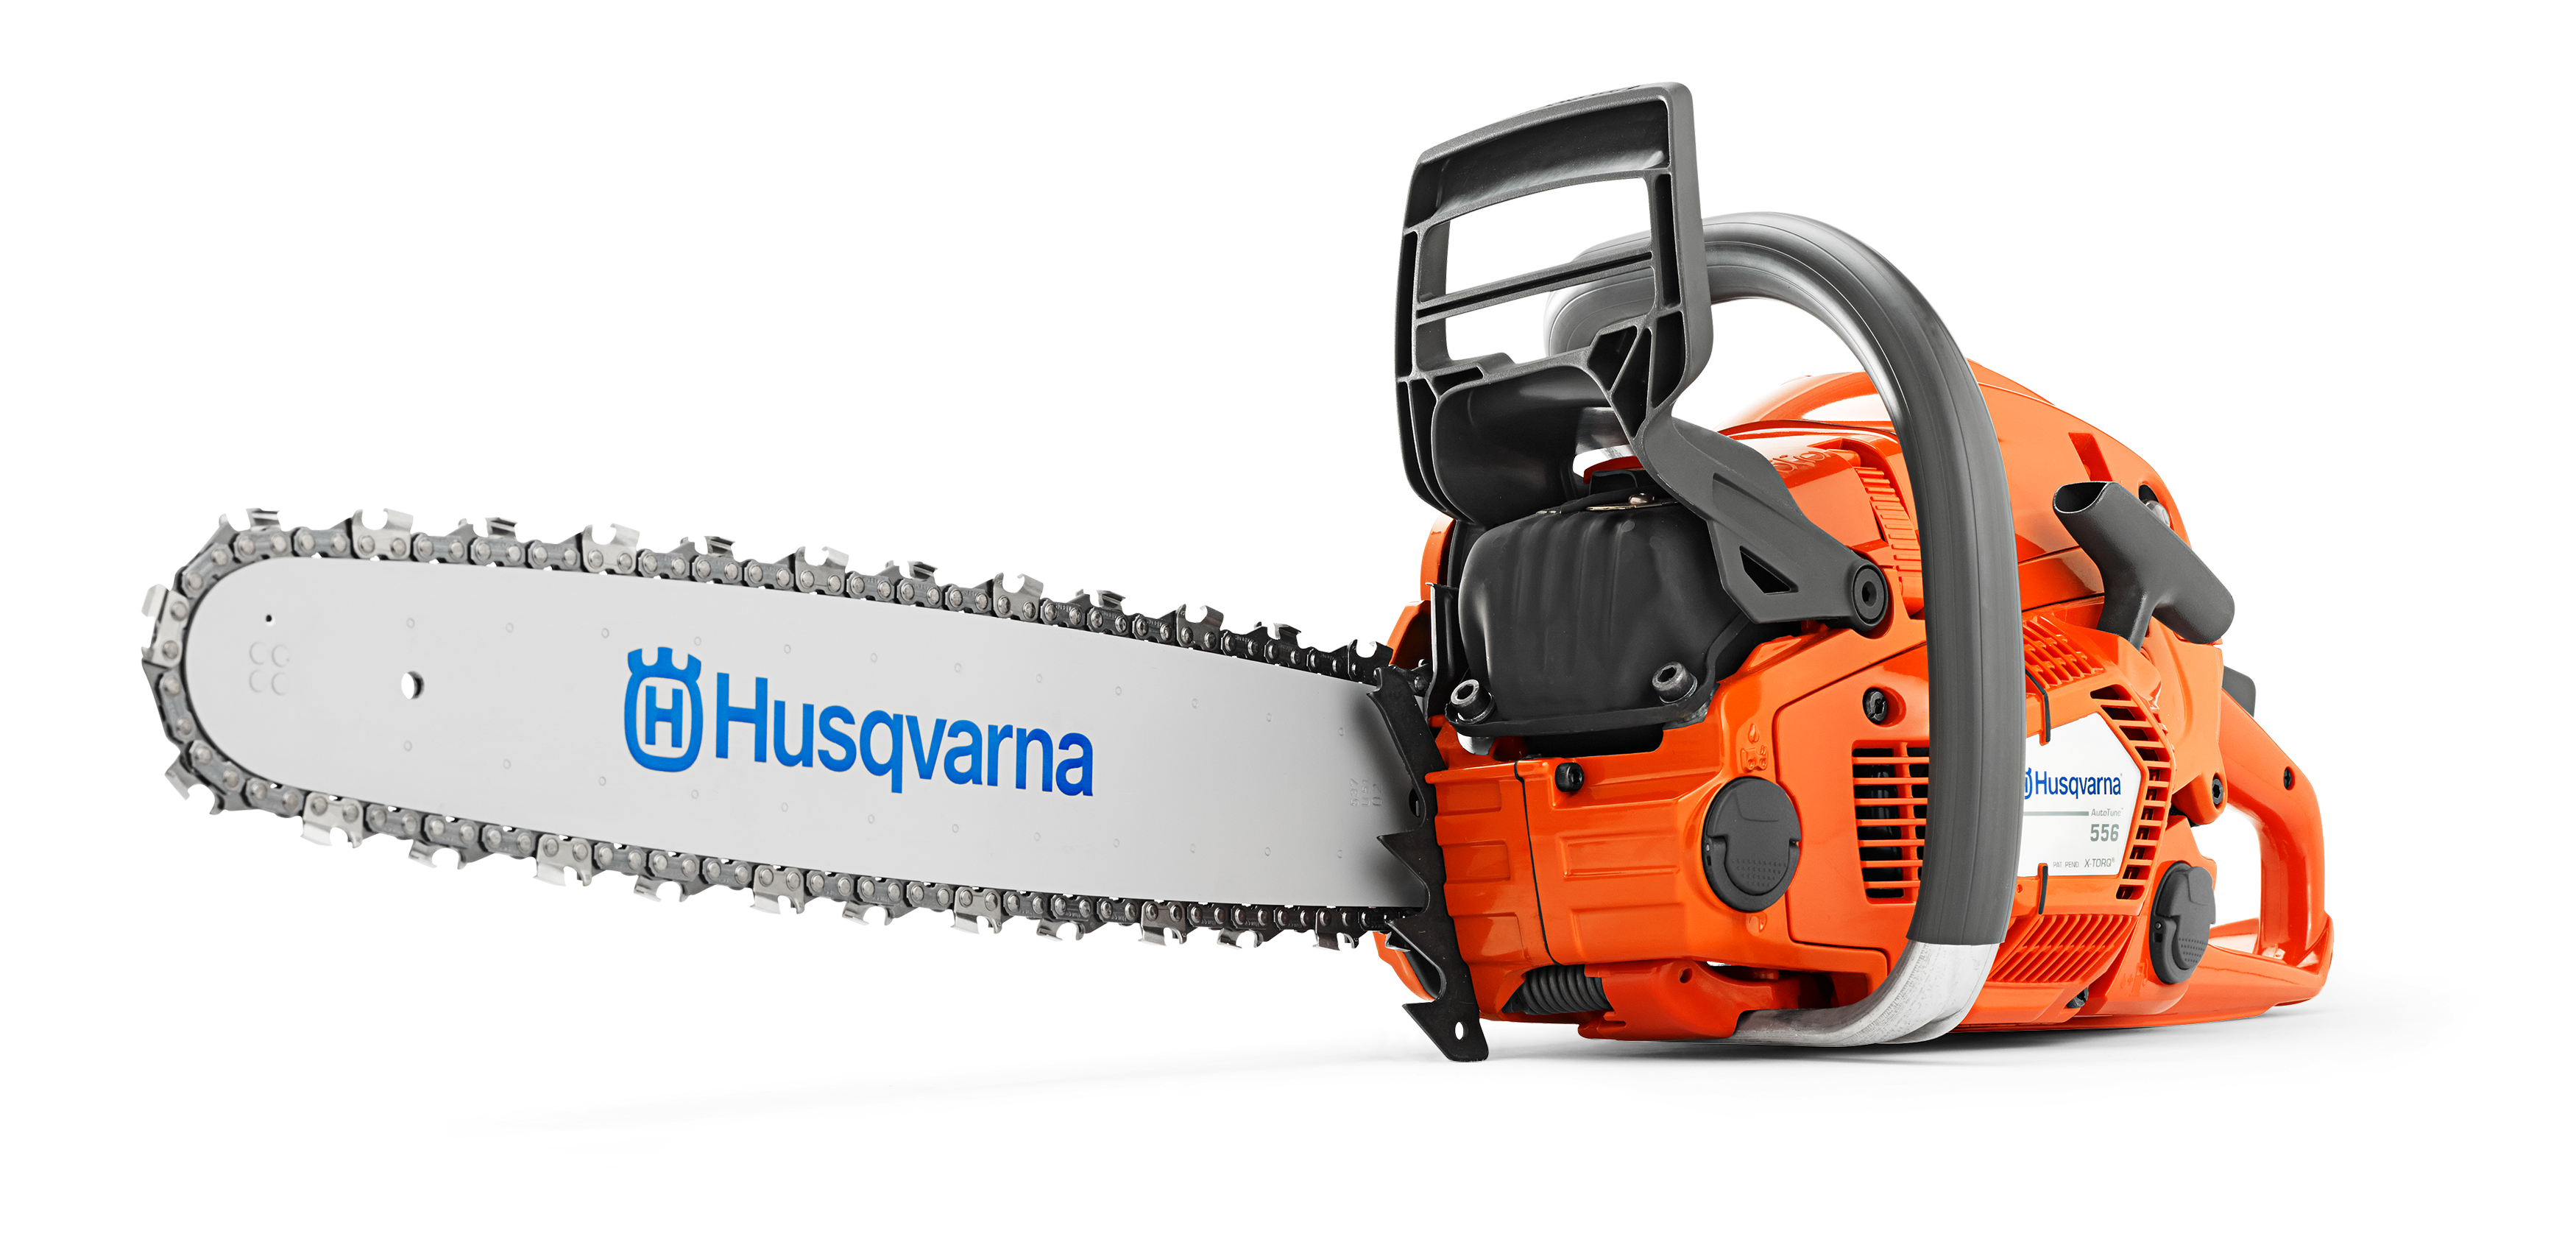 Husqvarna chainsaws autotune . Electric saw png black and white stock